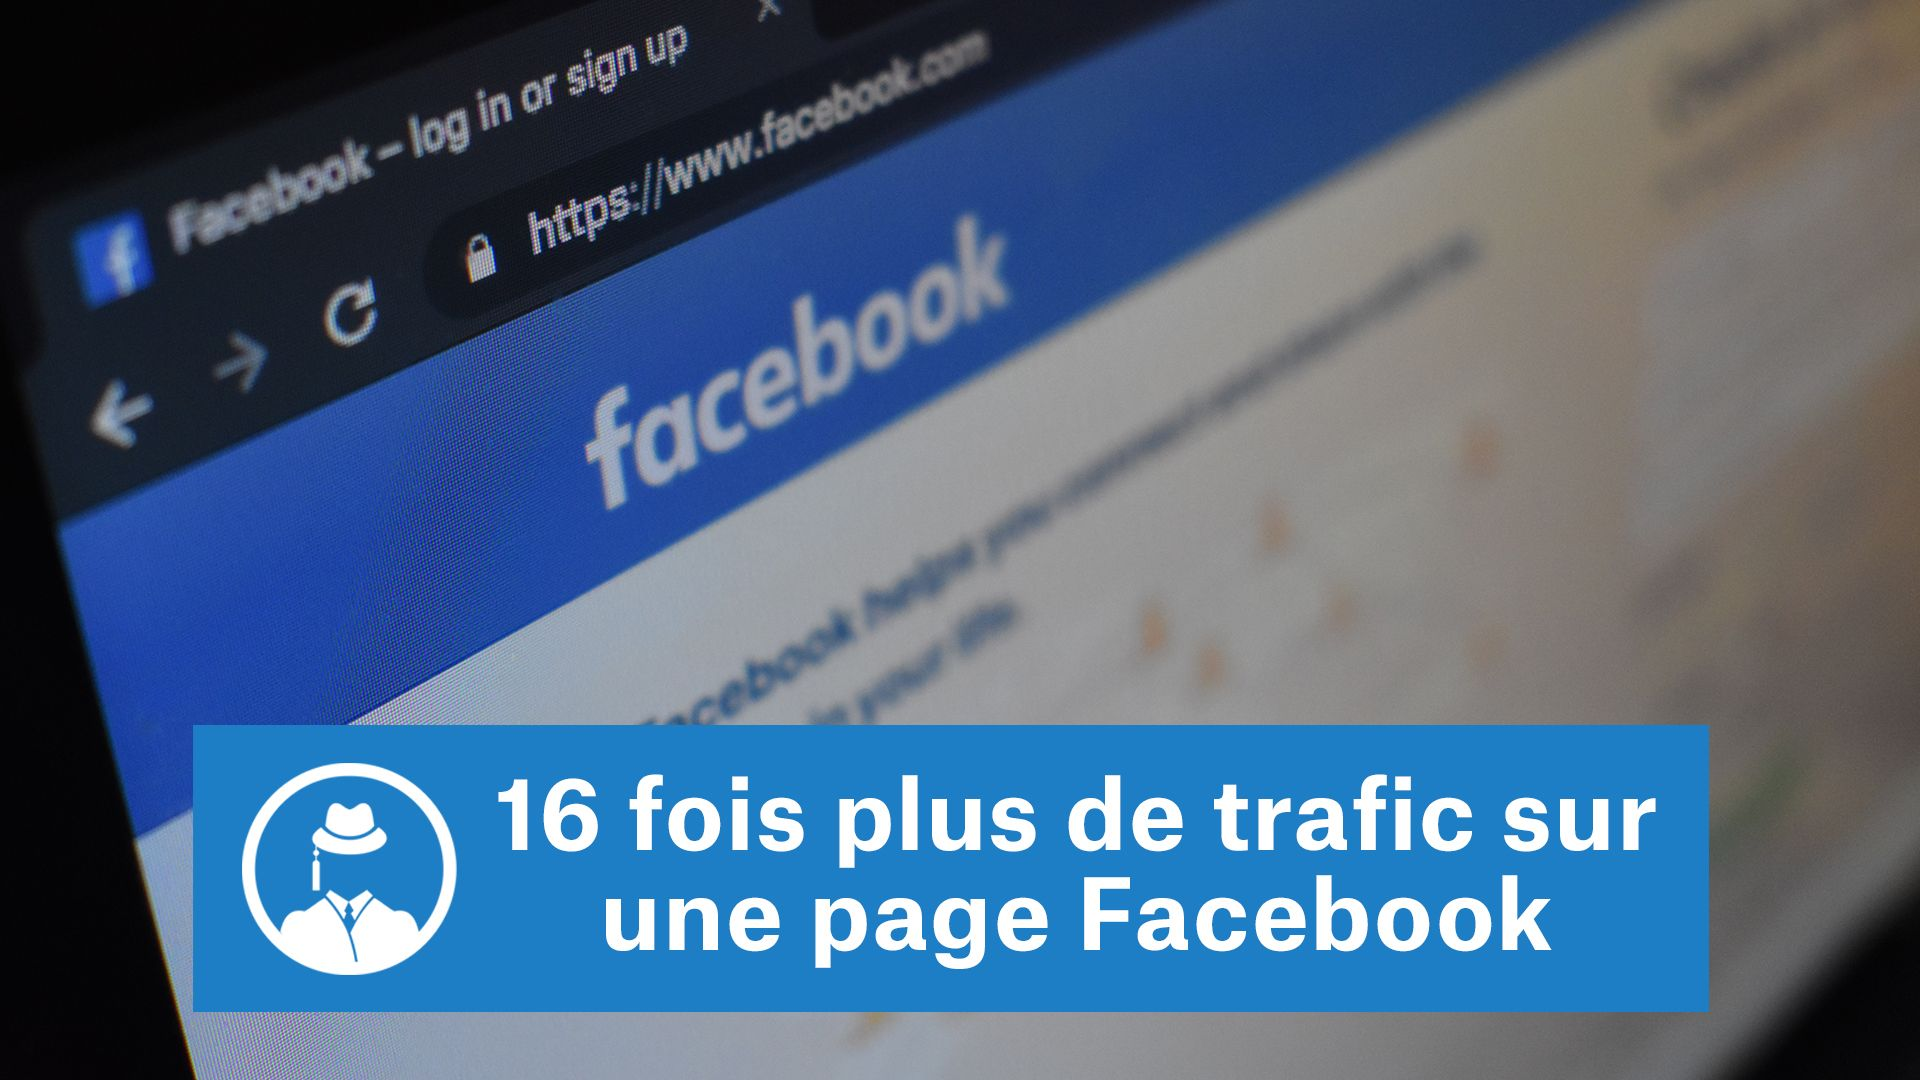 16 fois plus de trafic sur une page Facebook #GrowthHacking #WebMarketing #FormationGrowthHacking #CentreDeFormationFrance #TunnelAARRR #AARRR #SocialMedia #CommunityManagement #SEO #Facebook #SiteWeb